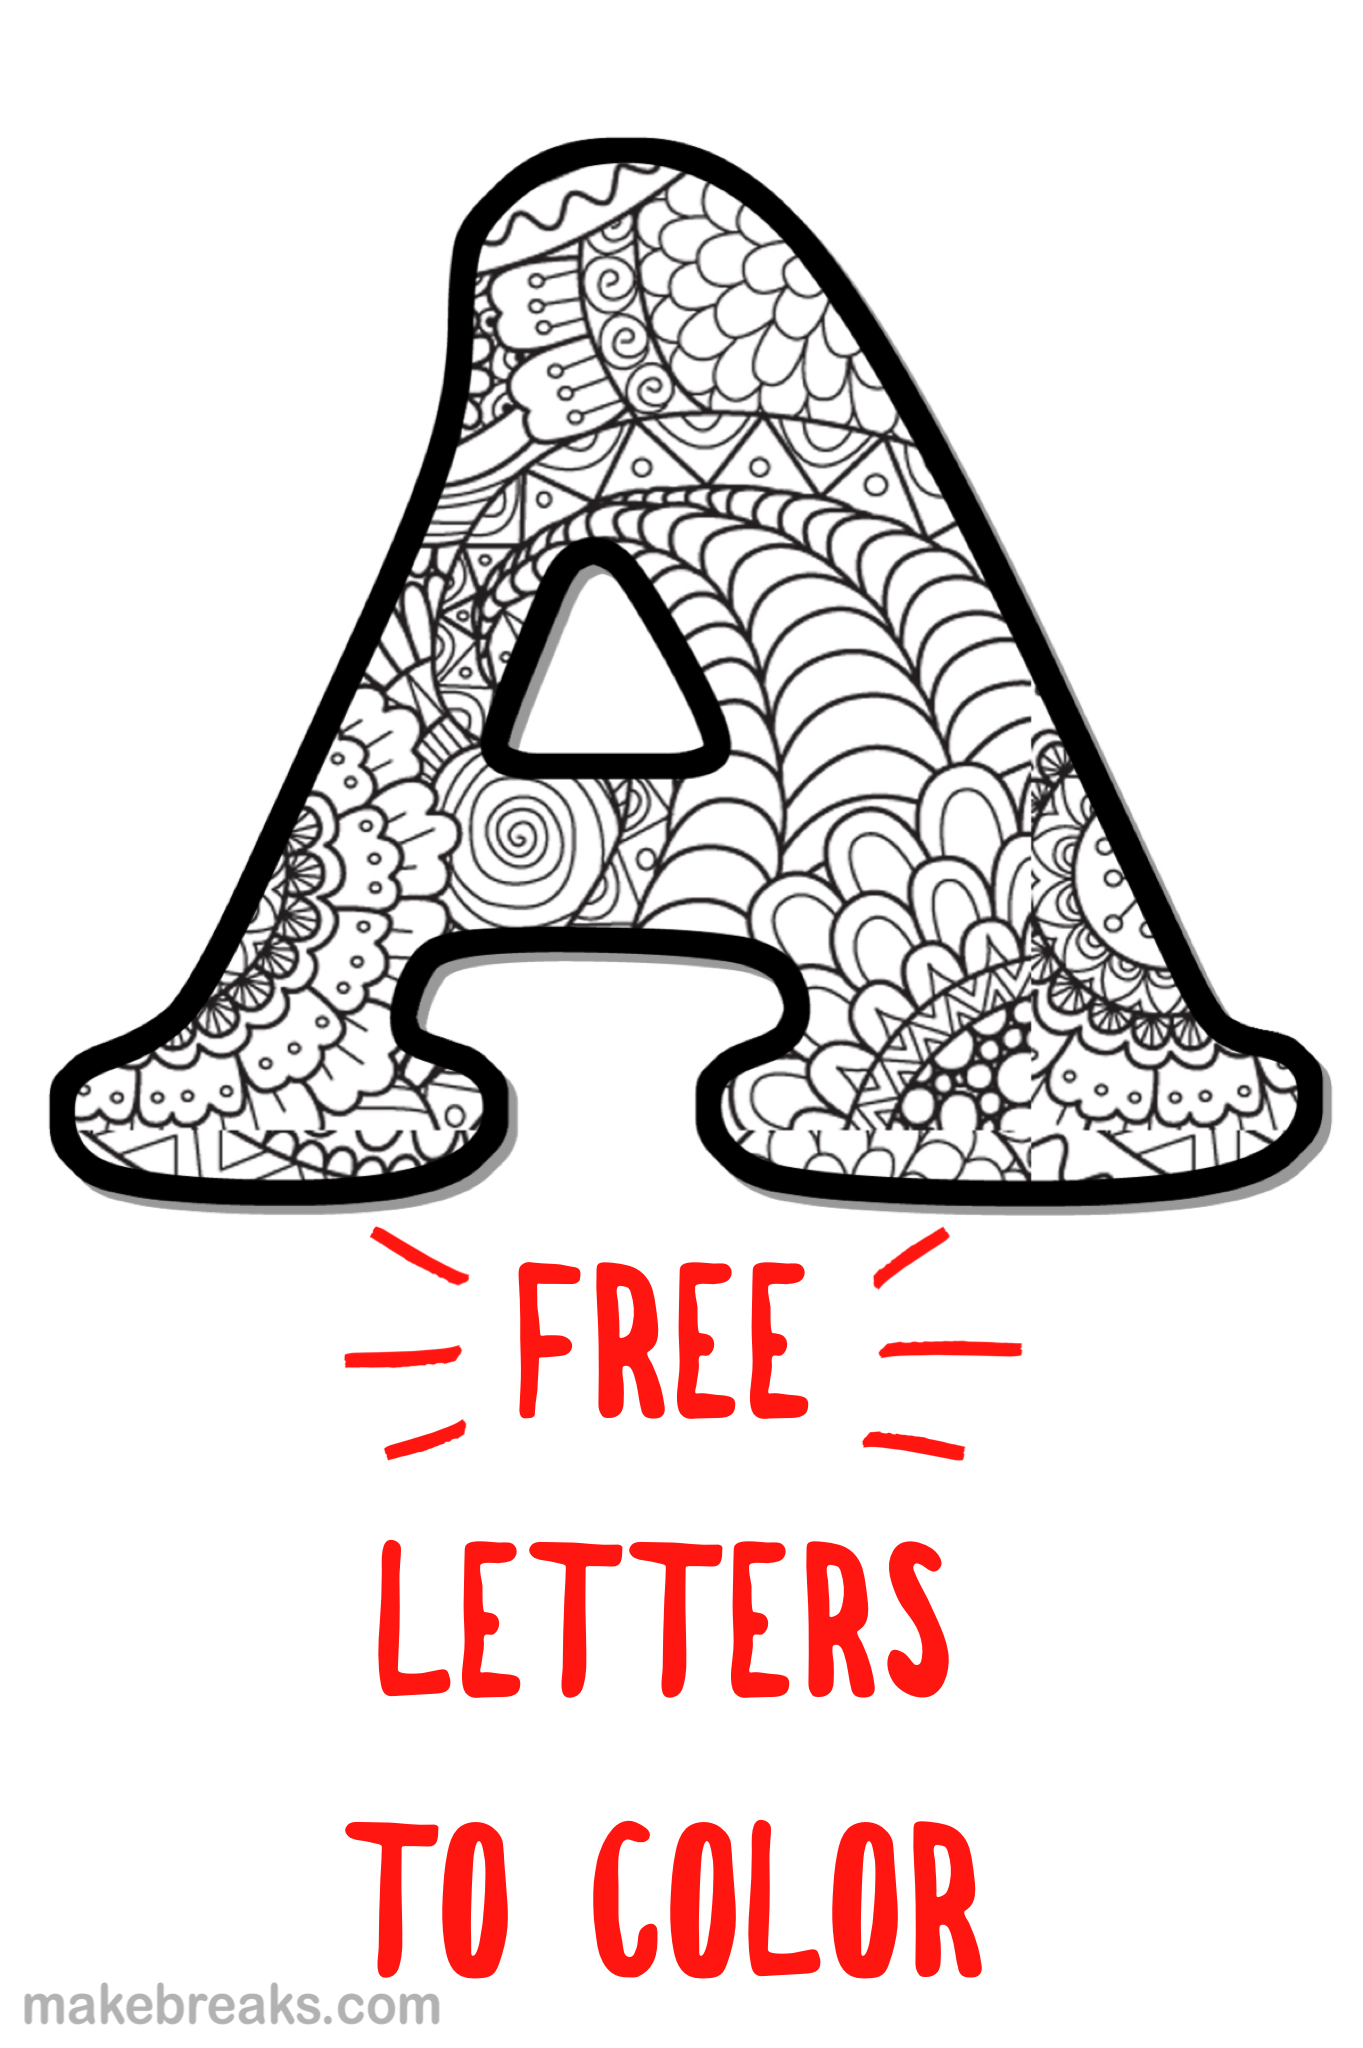 Printable Letter Alphabet Coloring Pages Make Breaks Alphabet Malvorlagen Vorschule Im Kindergarten Fotoalbum Gestalten